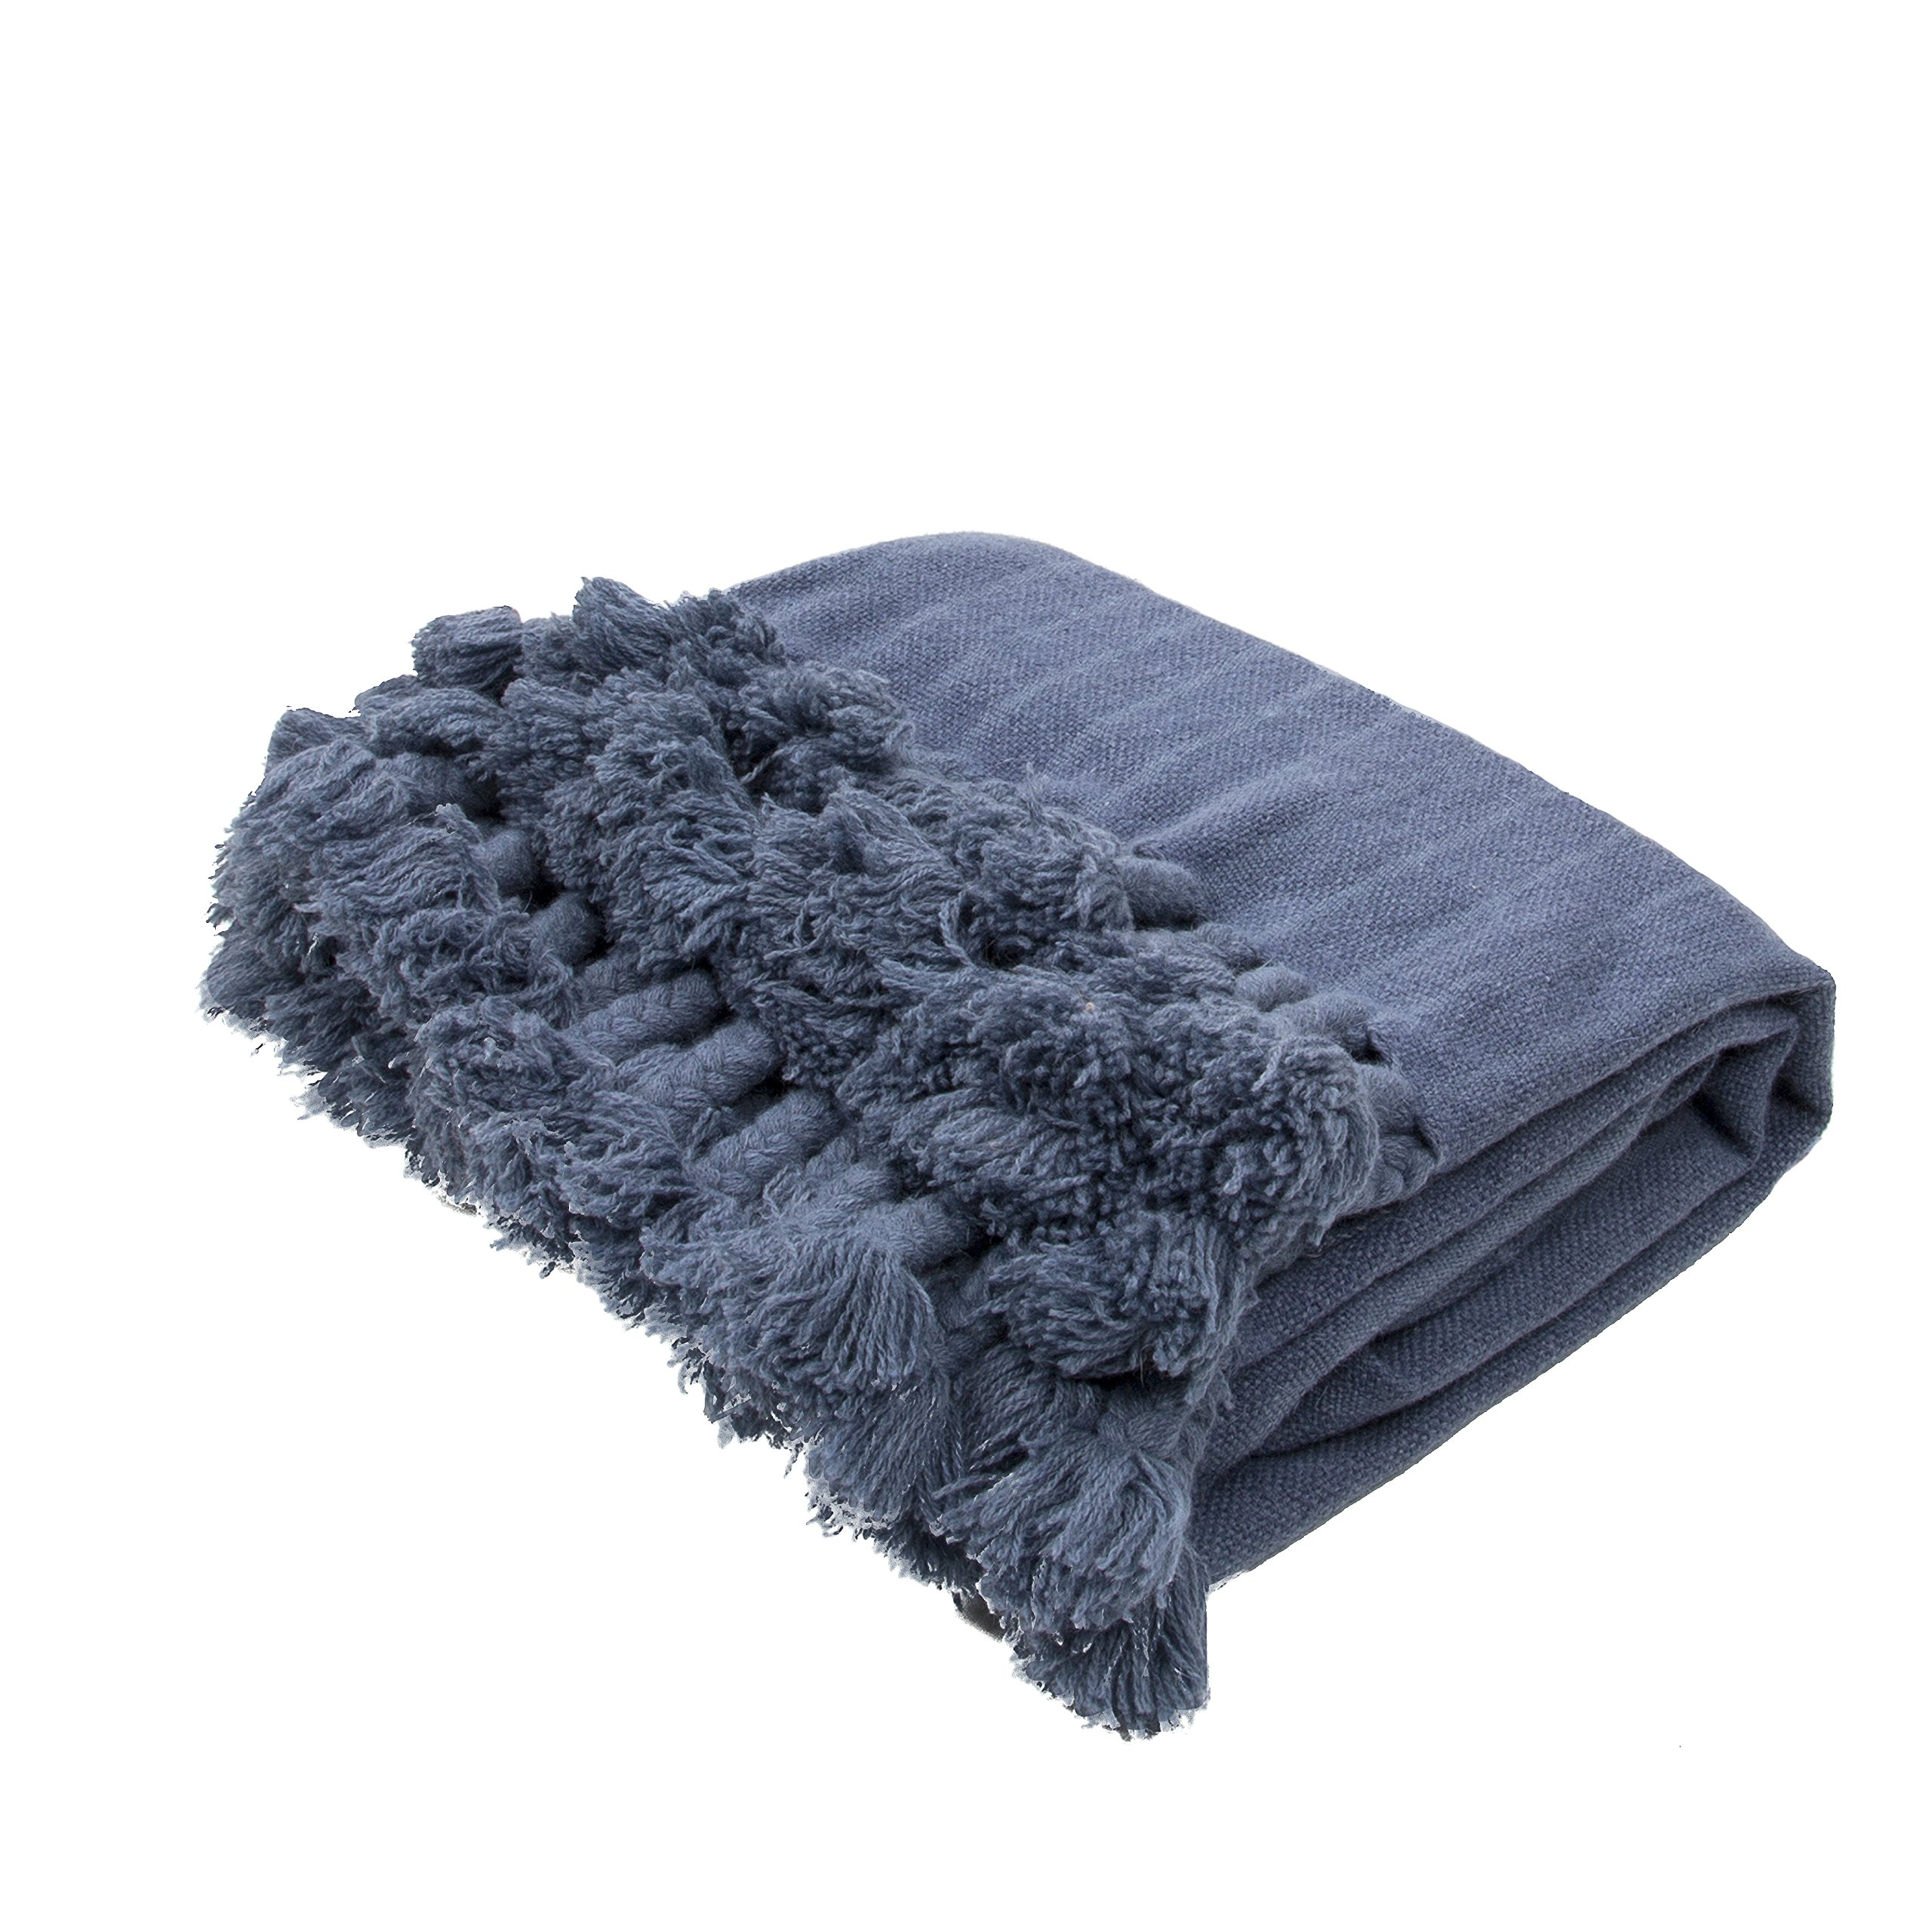 Jaipur Soft Hand Solid Pattern Blue Wool Throw, 50-Inch x 60-Inch, Bering Sea Native-1